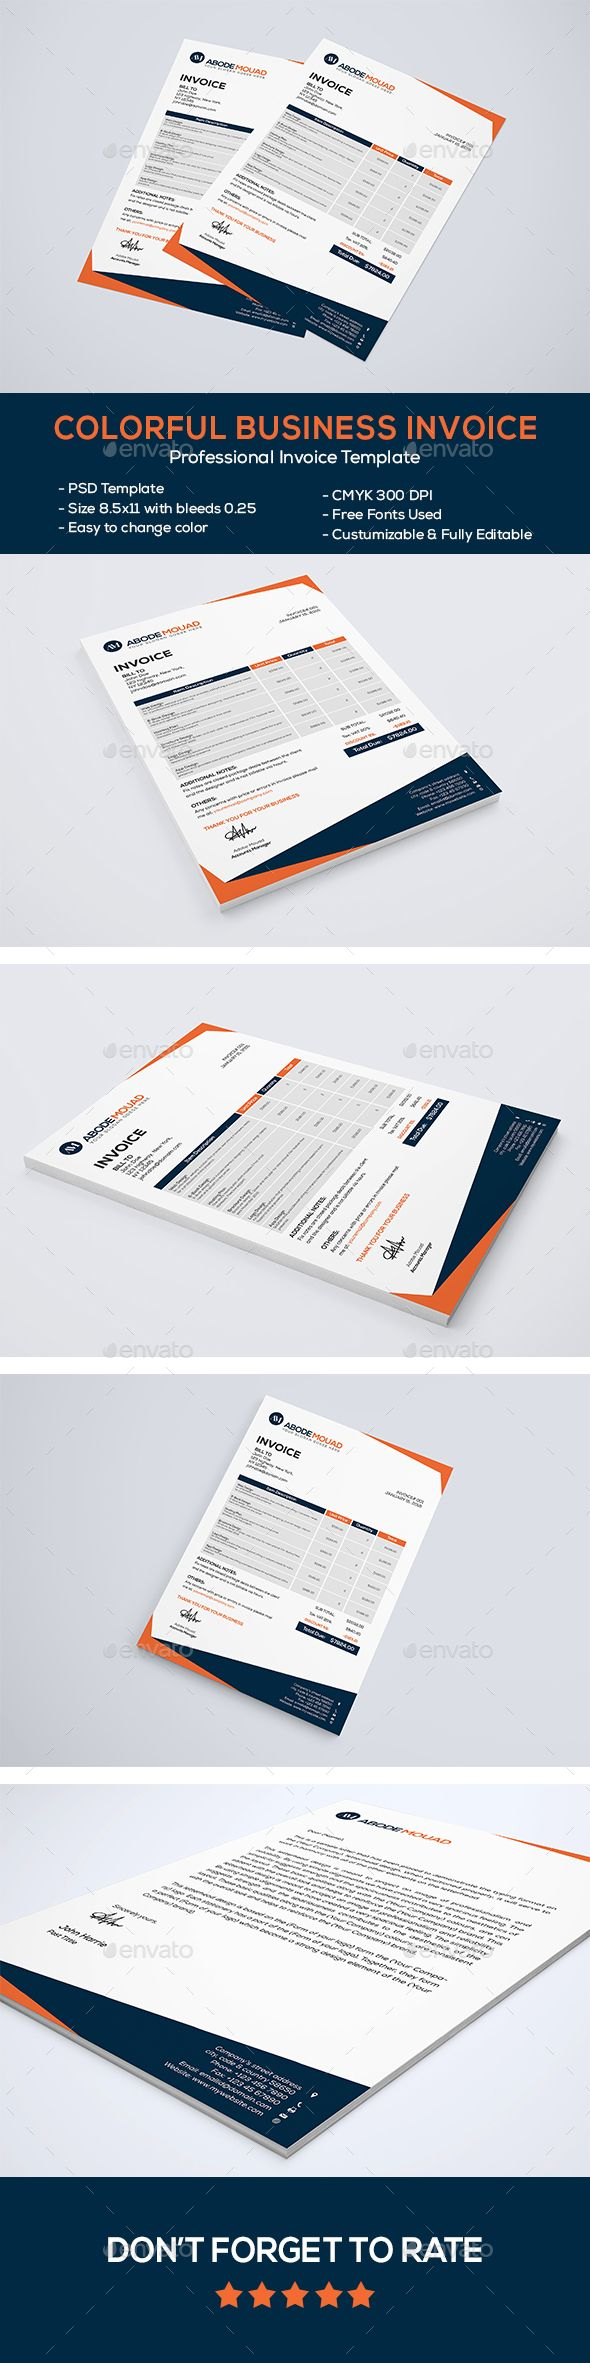 Colorful Business Invoice Template PSD #design Download: http://graphicriver.net/item/colorful-business-letterhead/14370232?ref=ksioks